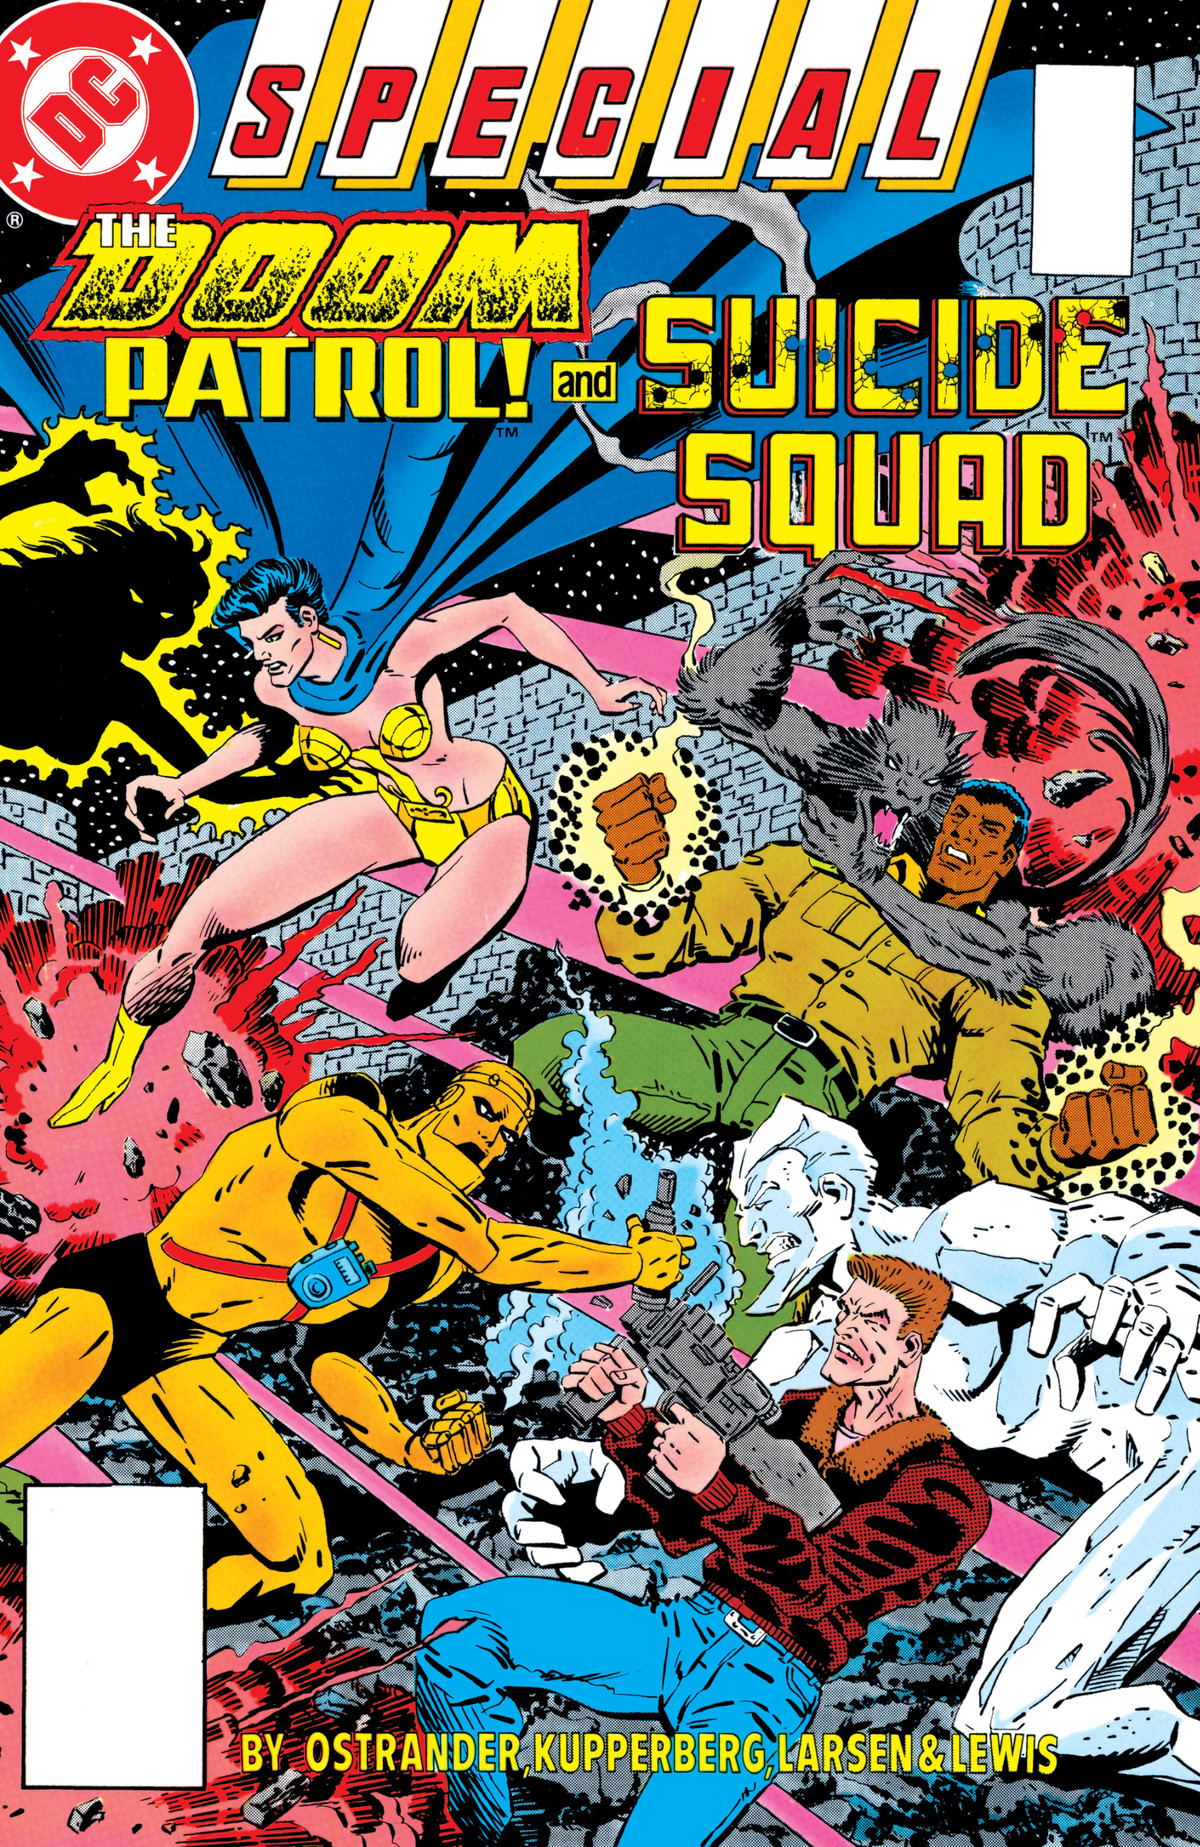 The Doom Patrol and the Suicide Squad clash on the cover of The Doom Patrol and Suicide Squad Special, DC Comics (1988).